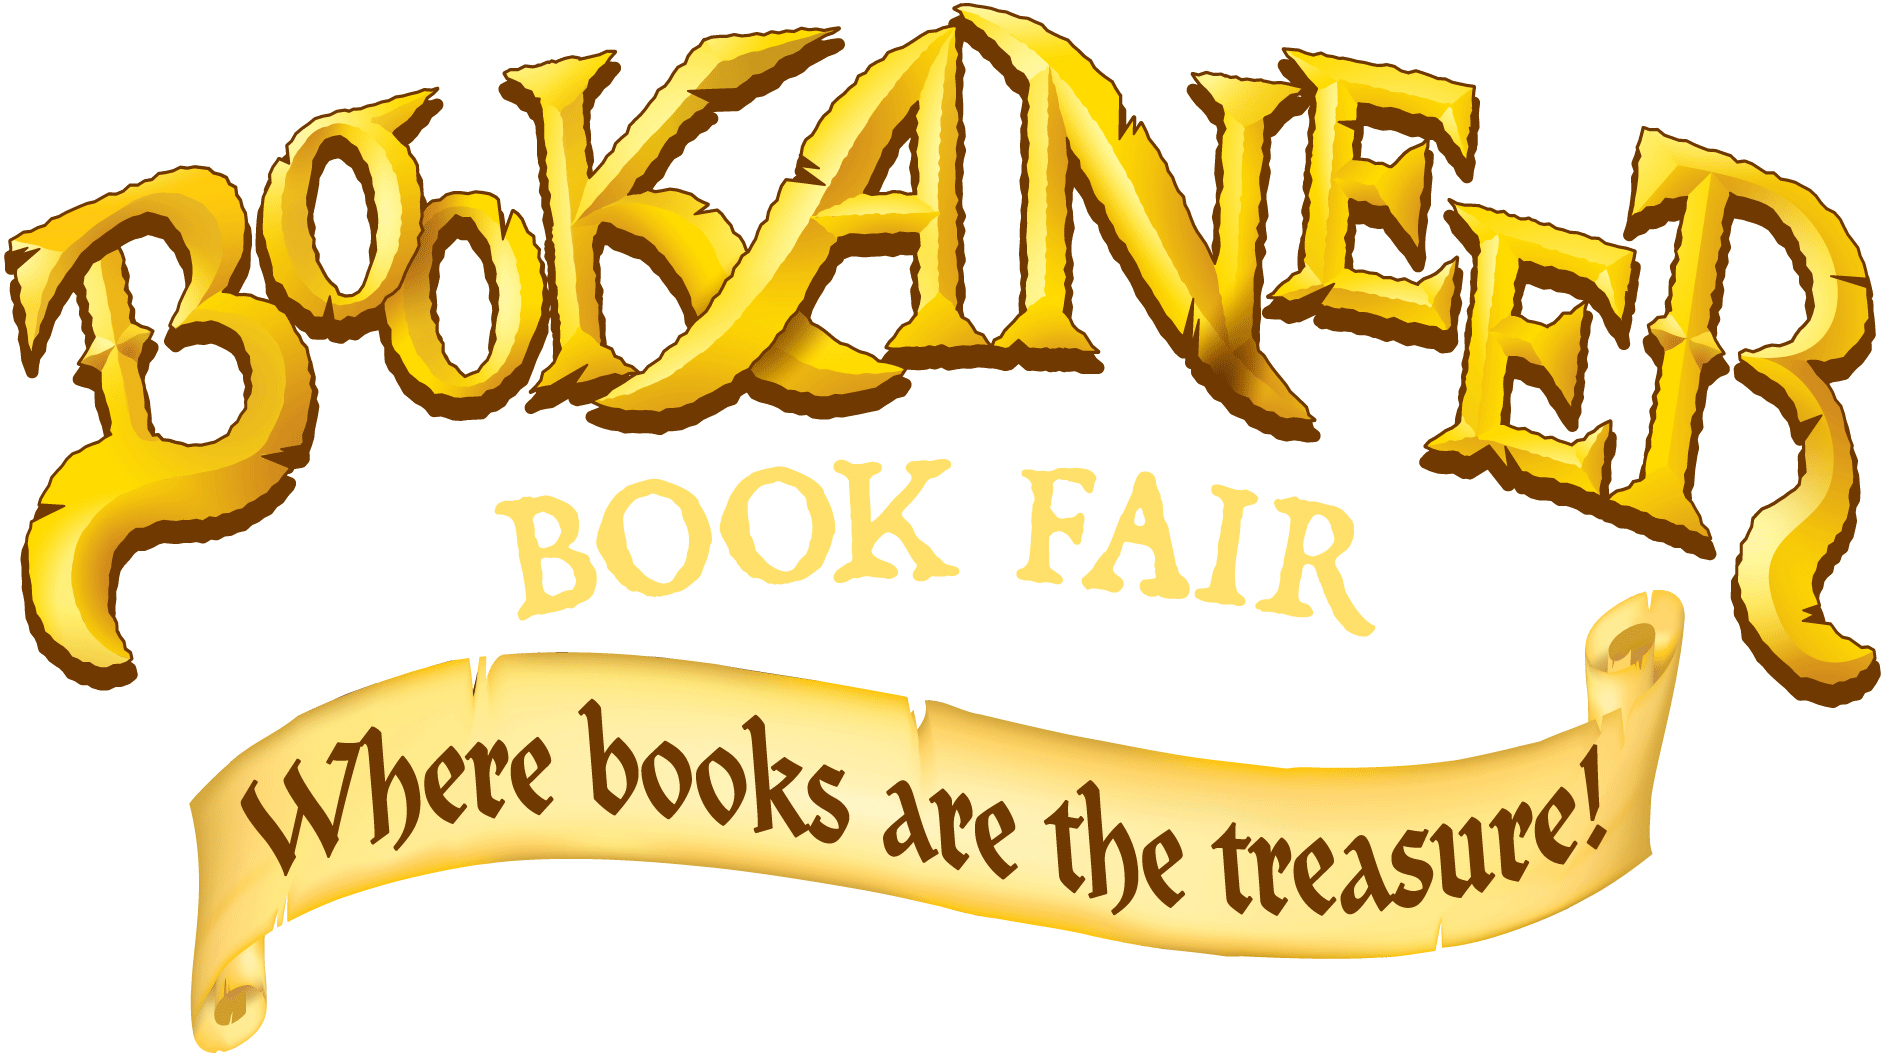 Bookaneer Book Fair Clip Art (1st Fair O-Bookaneer Book Fair Clip Art (1st Fair of the School Year)-11